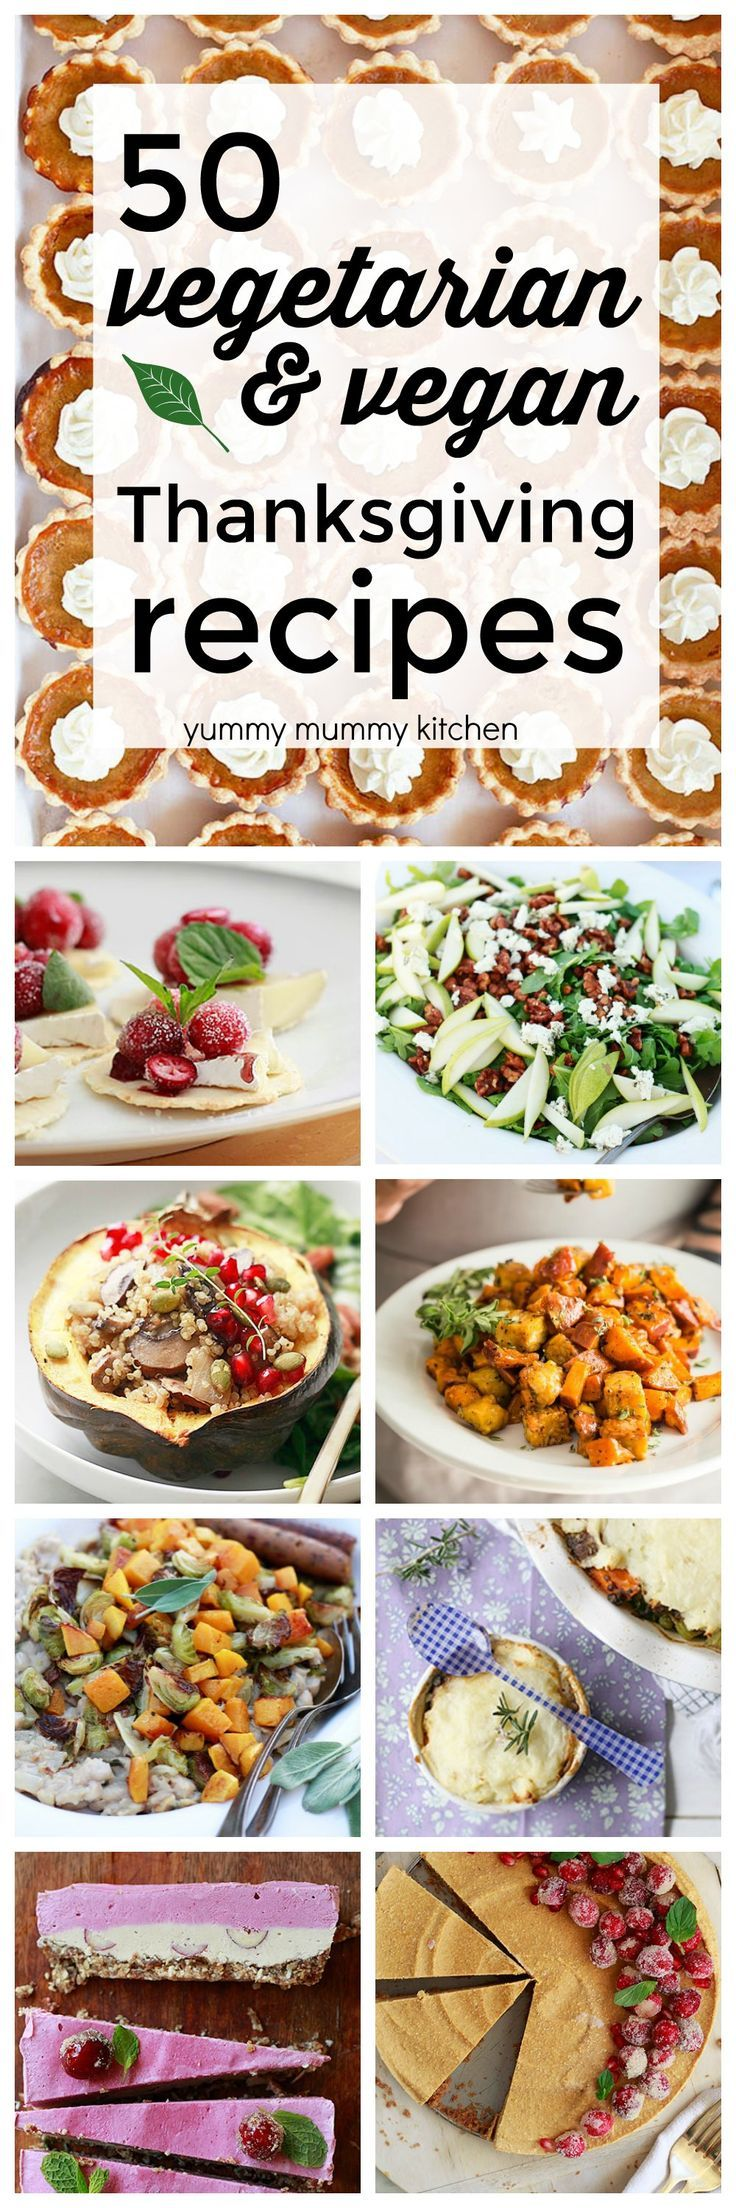 Delicious vegetarian, vegan, plant-based Thanksgiving recipes. From vegetarian Thanksgiving appetizers, to vegan Thanksgiving dinner ideas, to vegan pumpkin cheesecake!